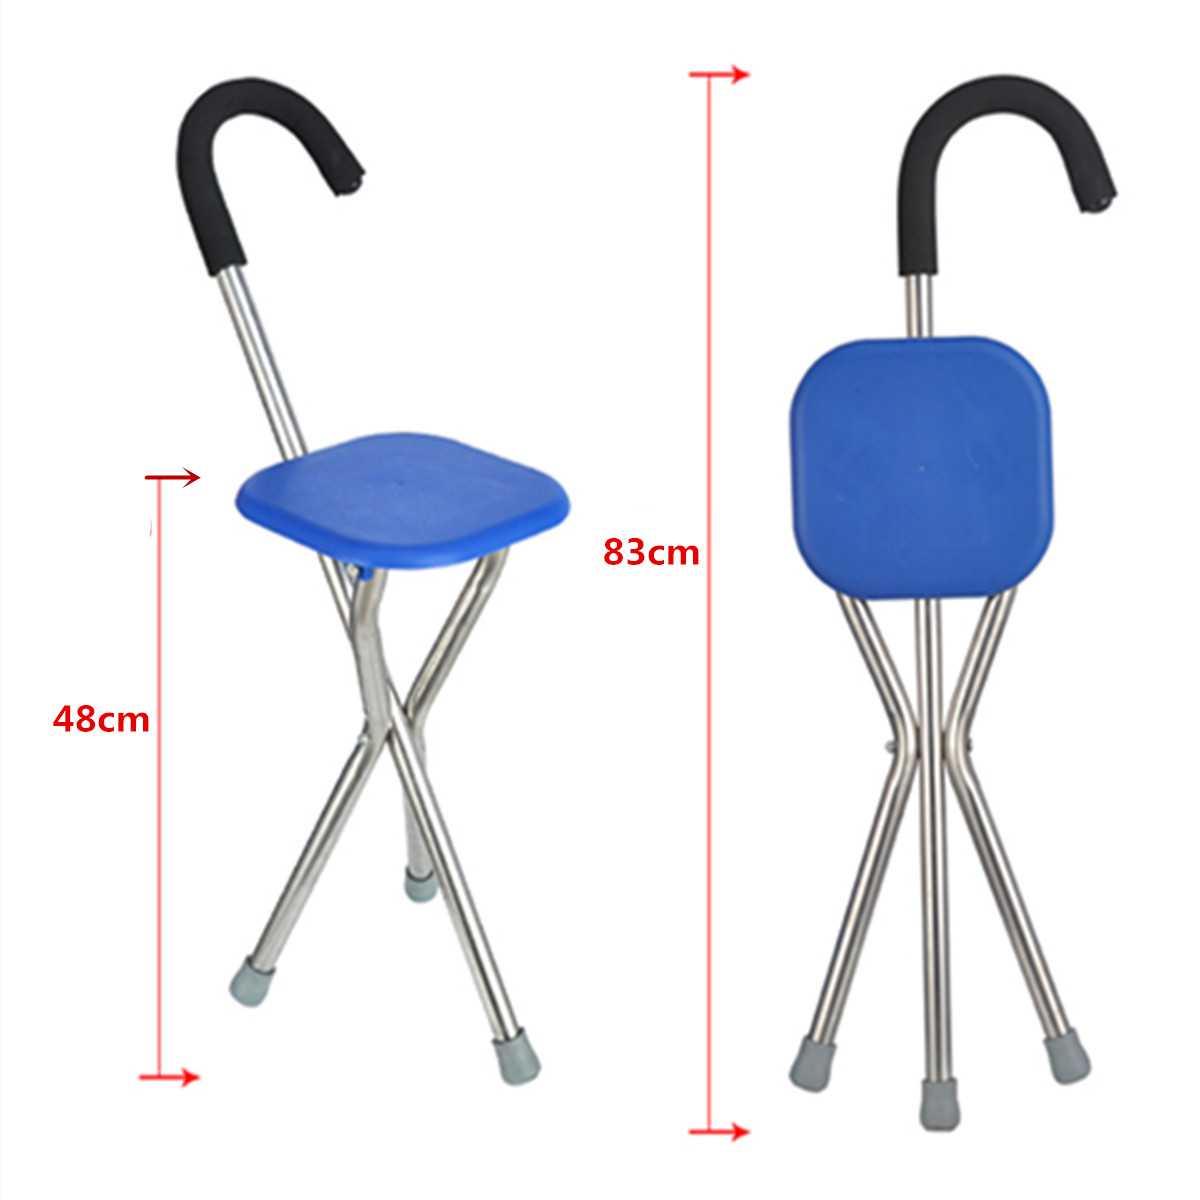 ipree outdoor travel folding stool chair portable cane. Black Bedroom Furniture Sets. Home Design Ideas